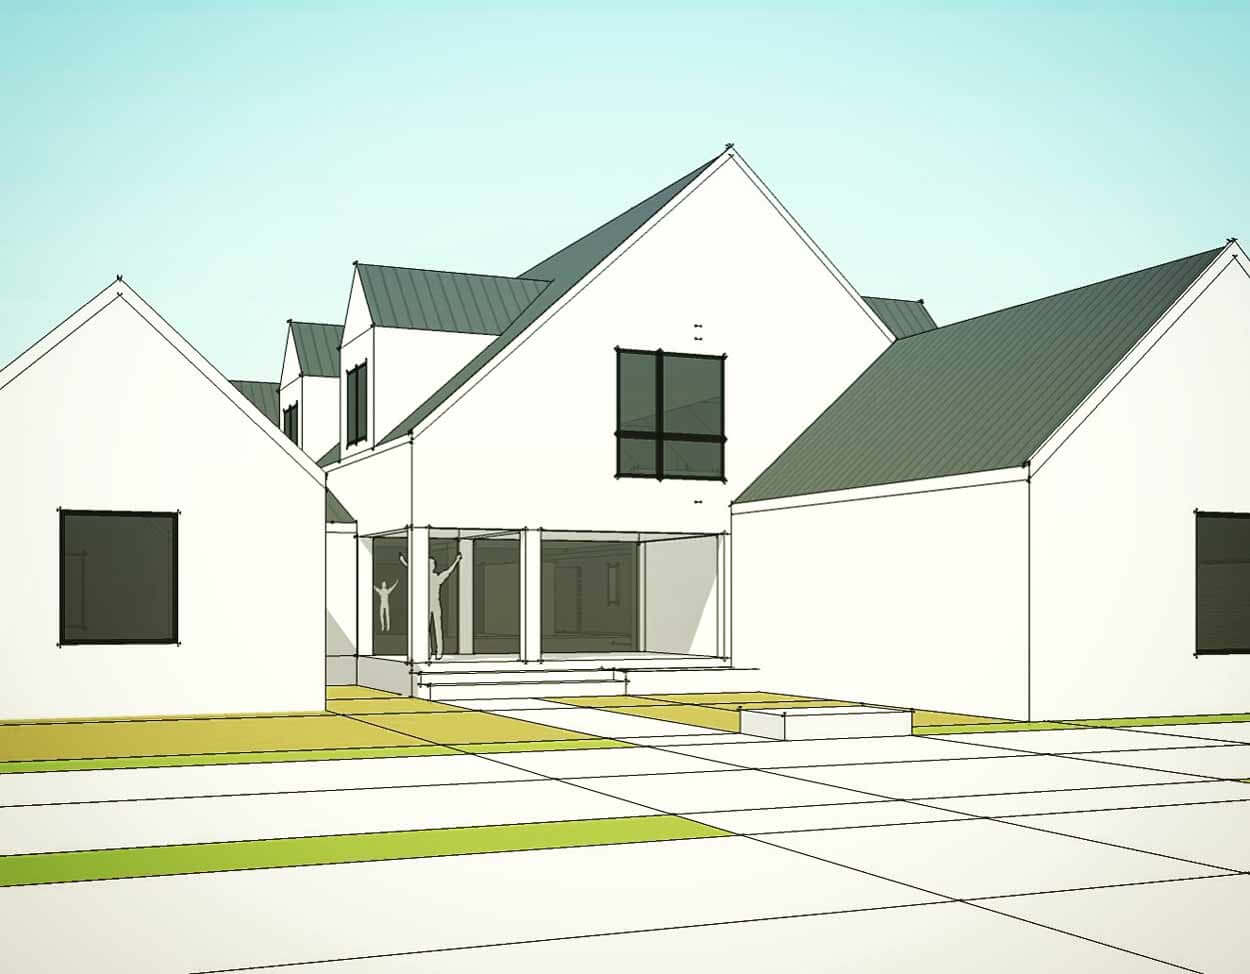 New Modern House Meridian Hills - SW Corner of 75th & Central - Indianapolis - HAUS Architecture - Christopher Short Architect